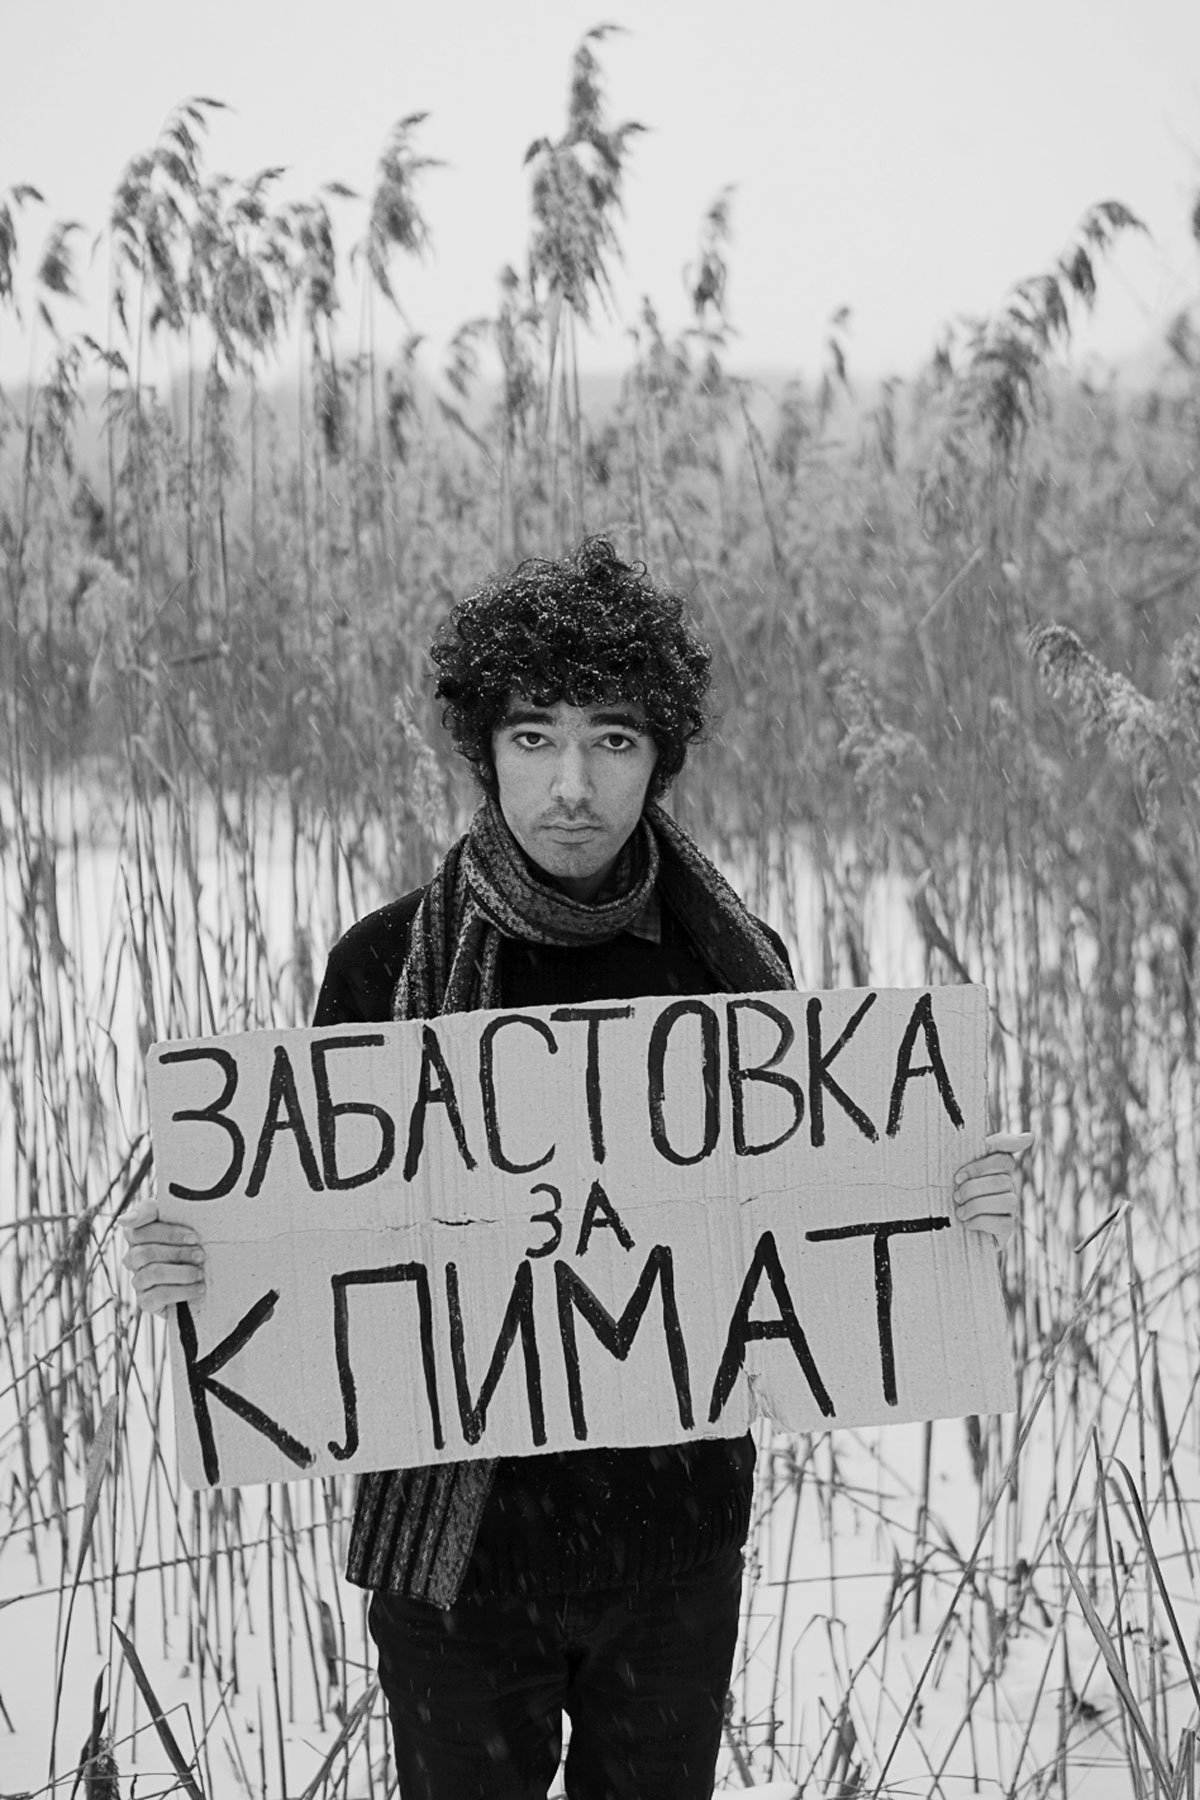 <p>Arshak Makichyan is a climate change activist and a coordinator of Fridays For Future Russia, the climate strike group inspired by Greta Thunberg, who tirelessly works to raise awareness about the issue in Russia. This portrait was taken by Tatiana Ermilova for I Do What I Want, a collaborative project of the label Kultrab and students of the Rodchenko School of Photography in the Media department, aiming to spotlight activists and cultural figures promoting freedom and self-expression.</p>